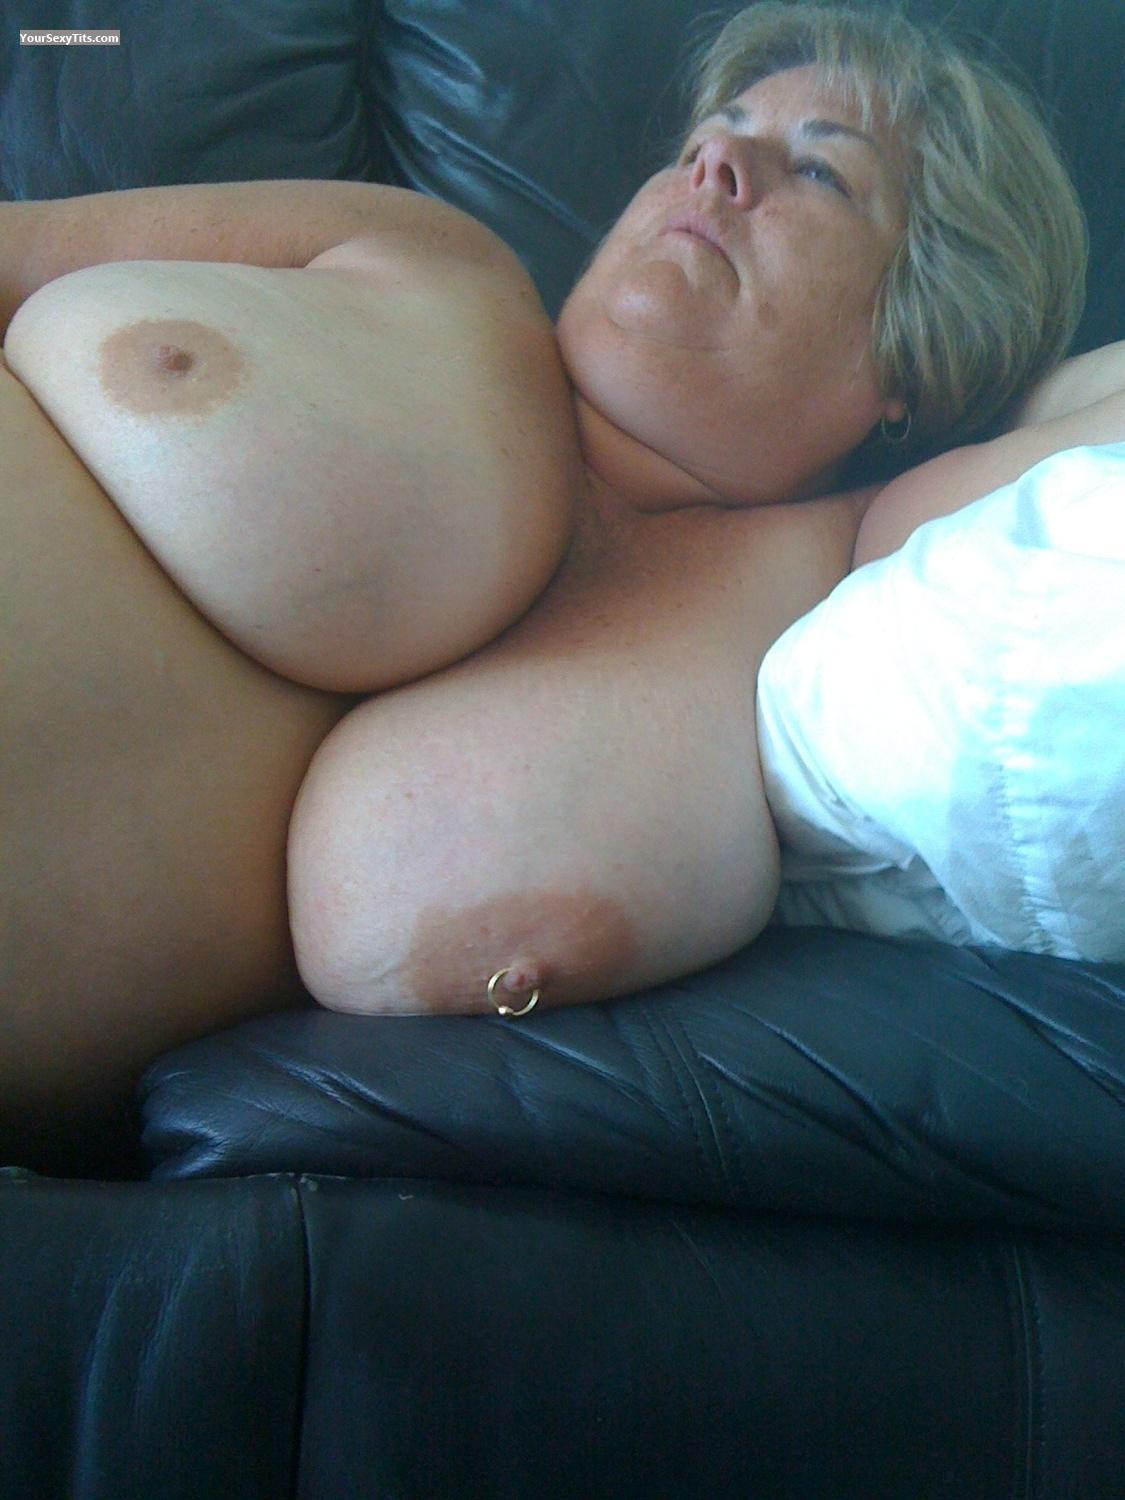 Tit Flash: Extremely Big Tits By IPhone - Topless Tjane from United StatesPierced Nipples